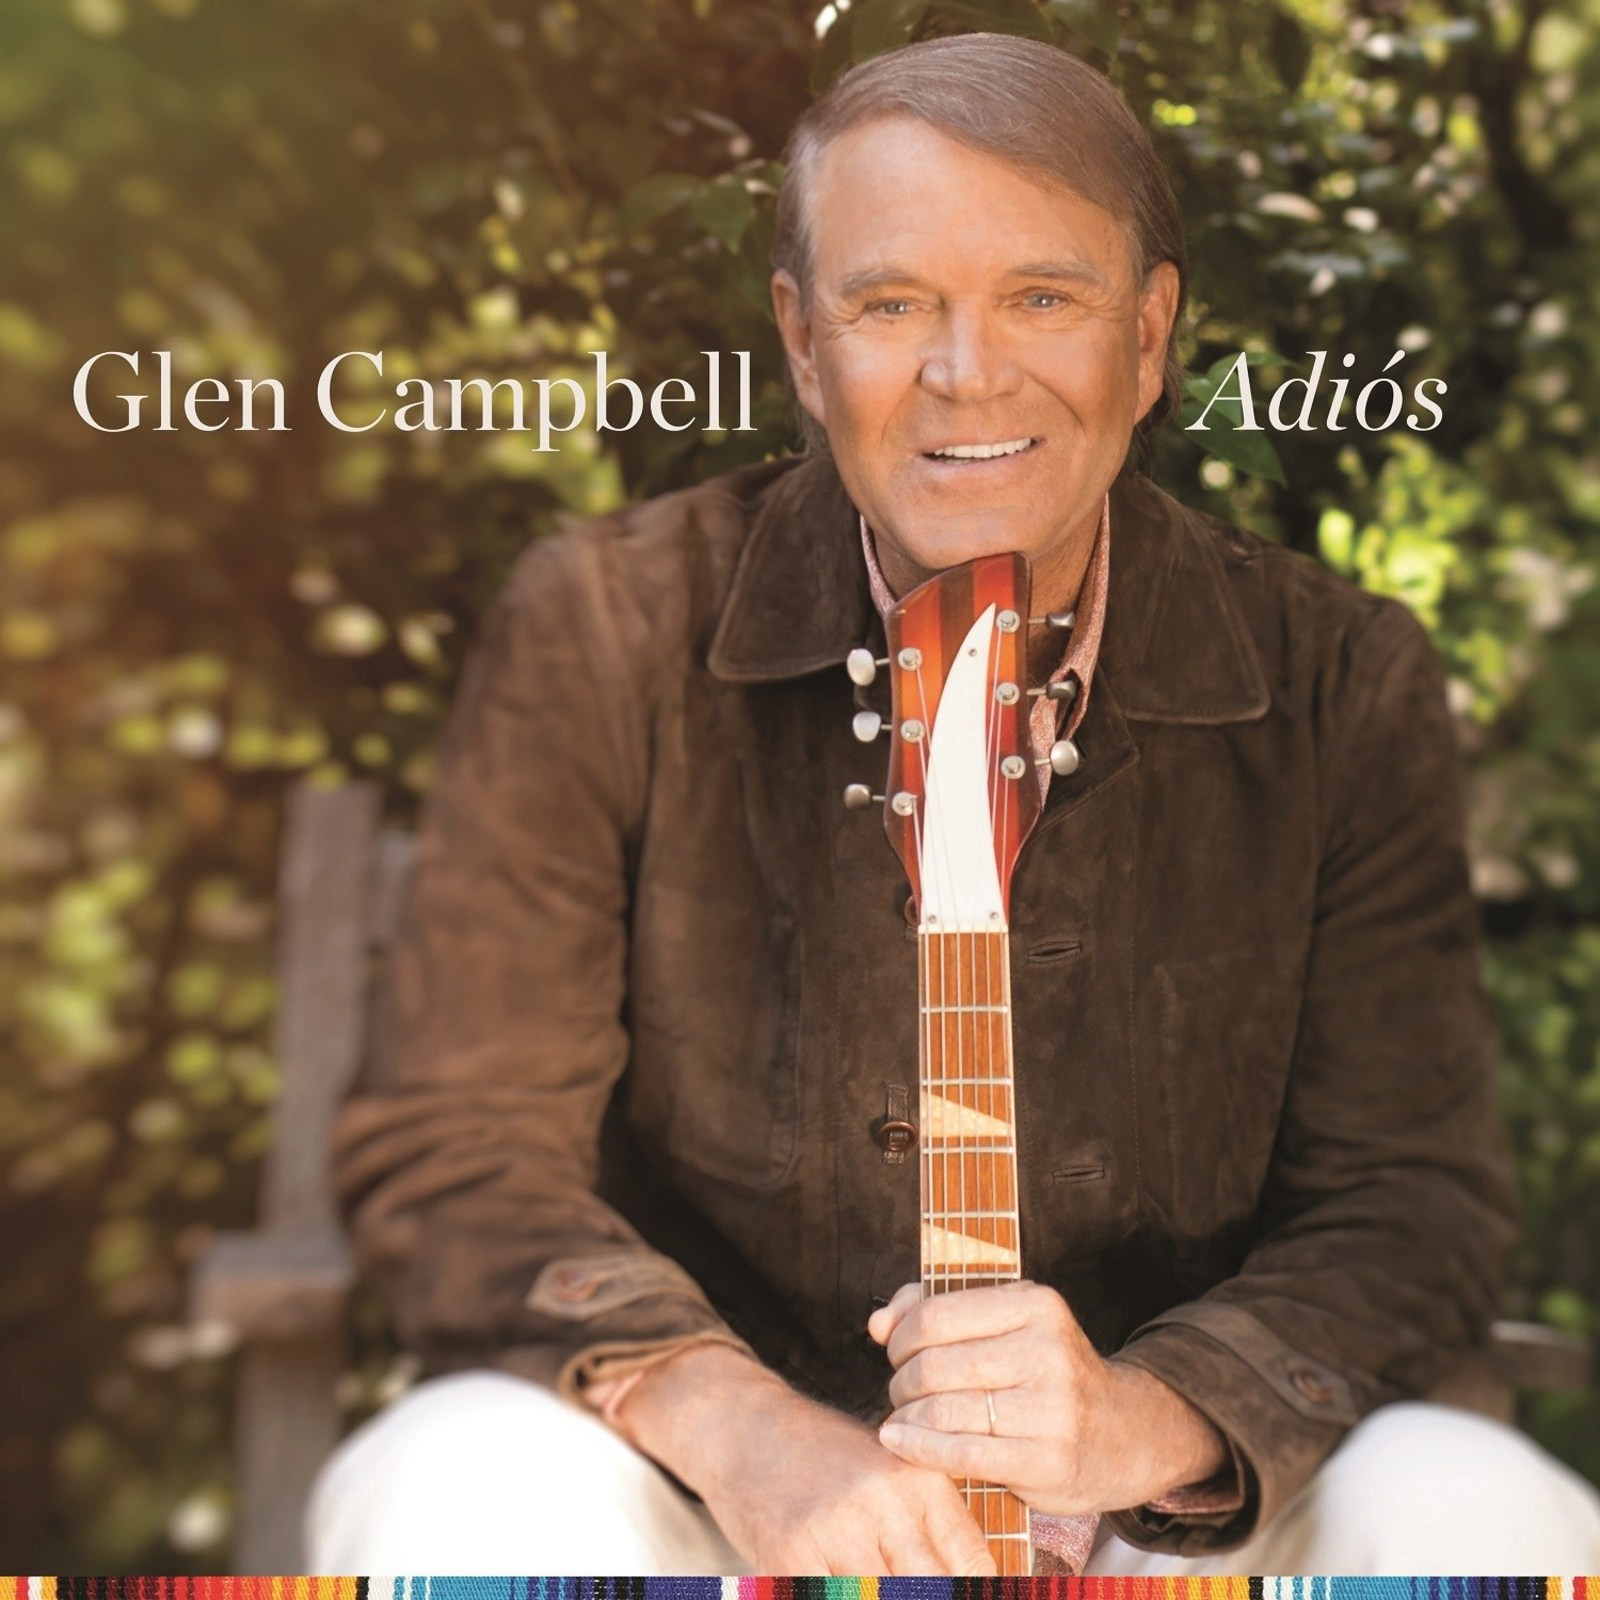 Click on image to purchase Glen Campbell's last album adios